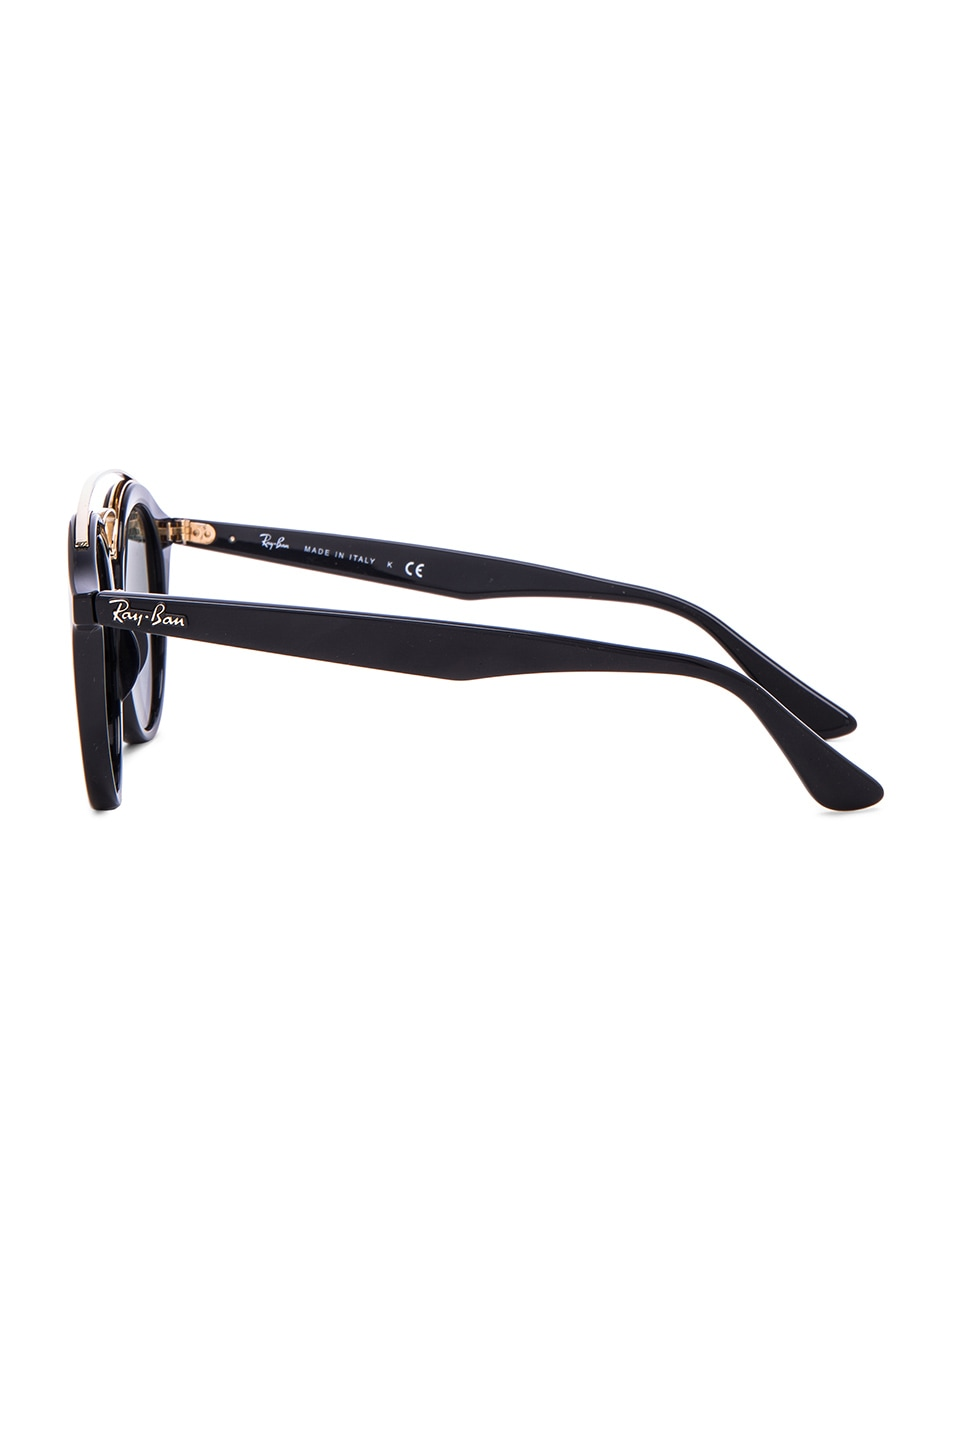 Image 3 of Ray-Ban Gatsby Sunglasses in Black